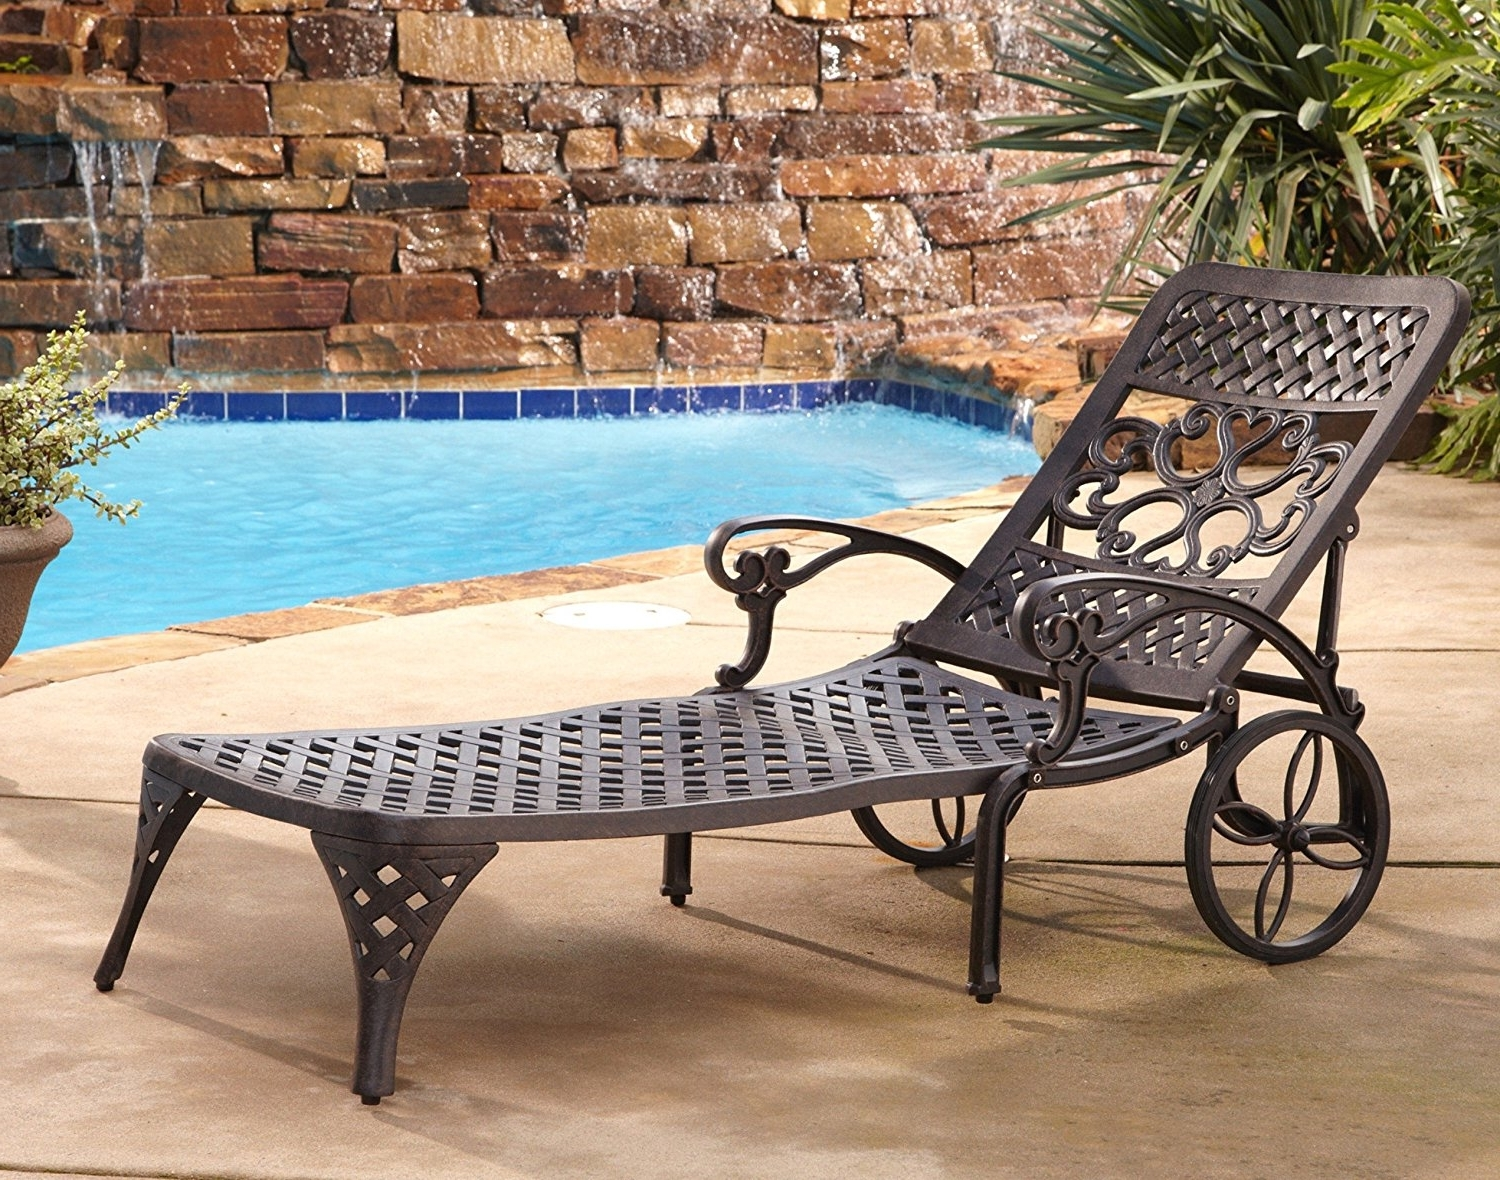 Most Popular Chaise Lounge Chairs At Sears Intended For Amazon : Home Styles Biscayne Chaise Lounge Chair, Bronze (View 11 of 15)